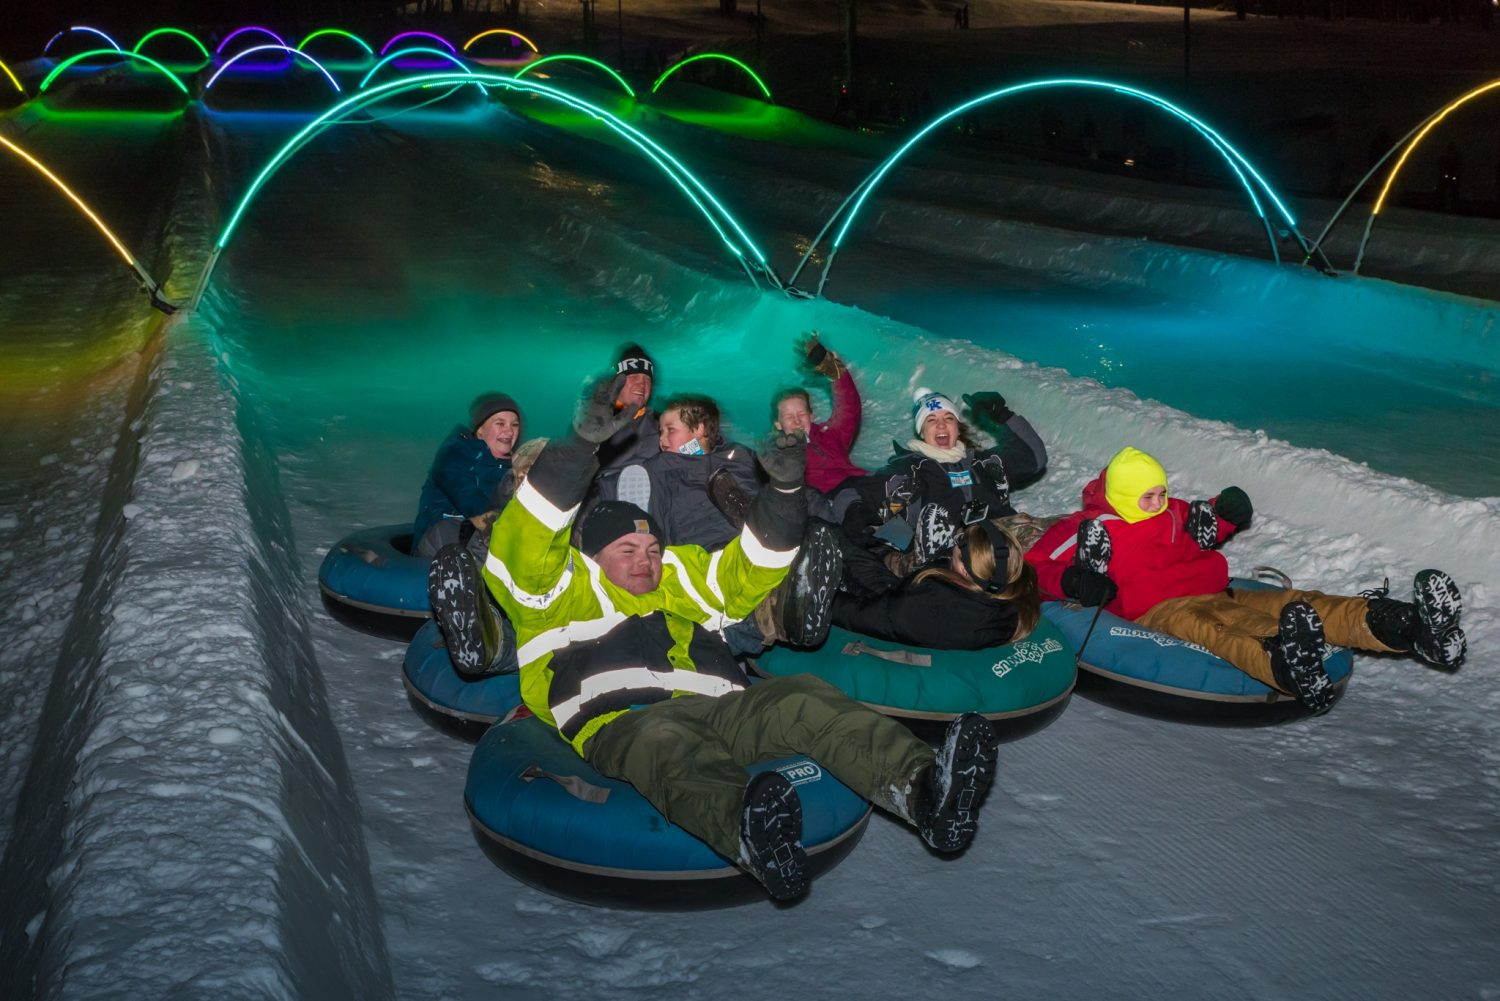 Glow Tubing at Snow Trails is Screaming Good Fun